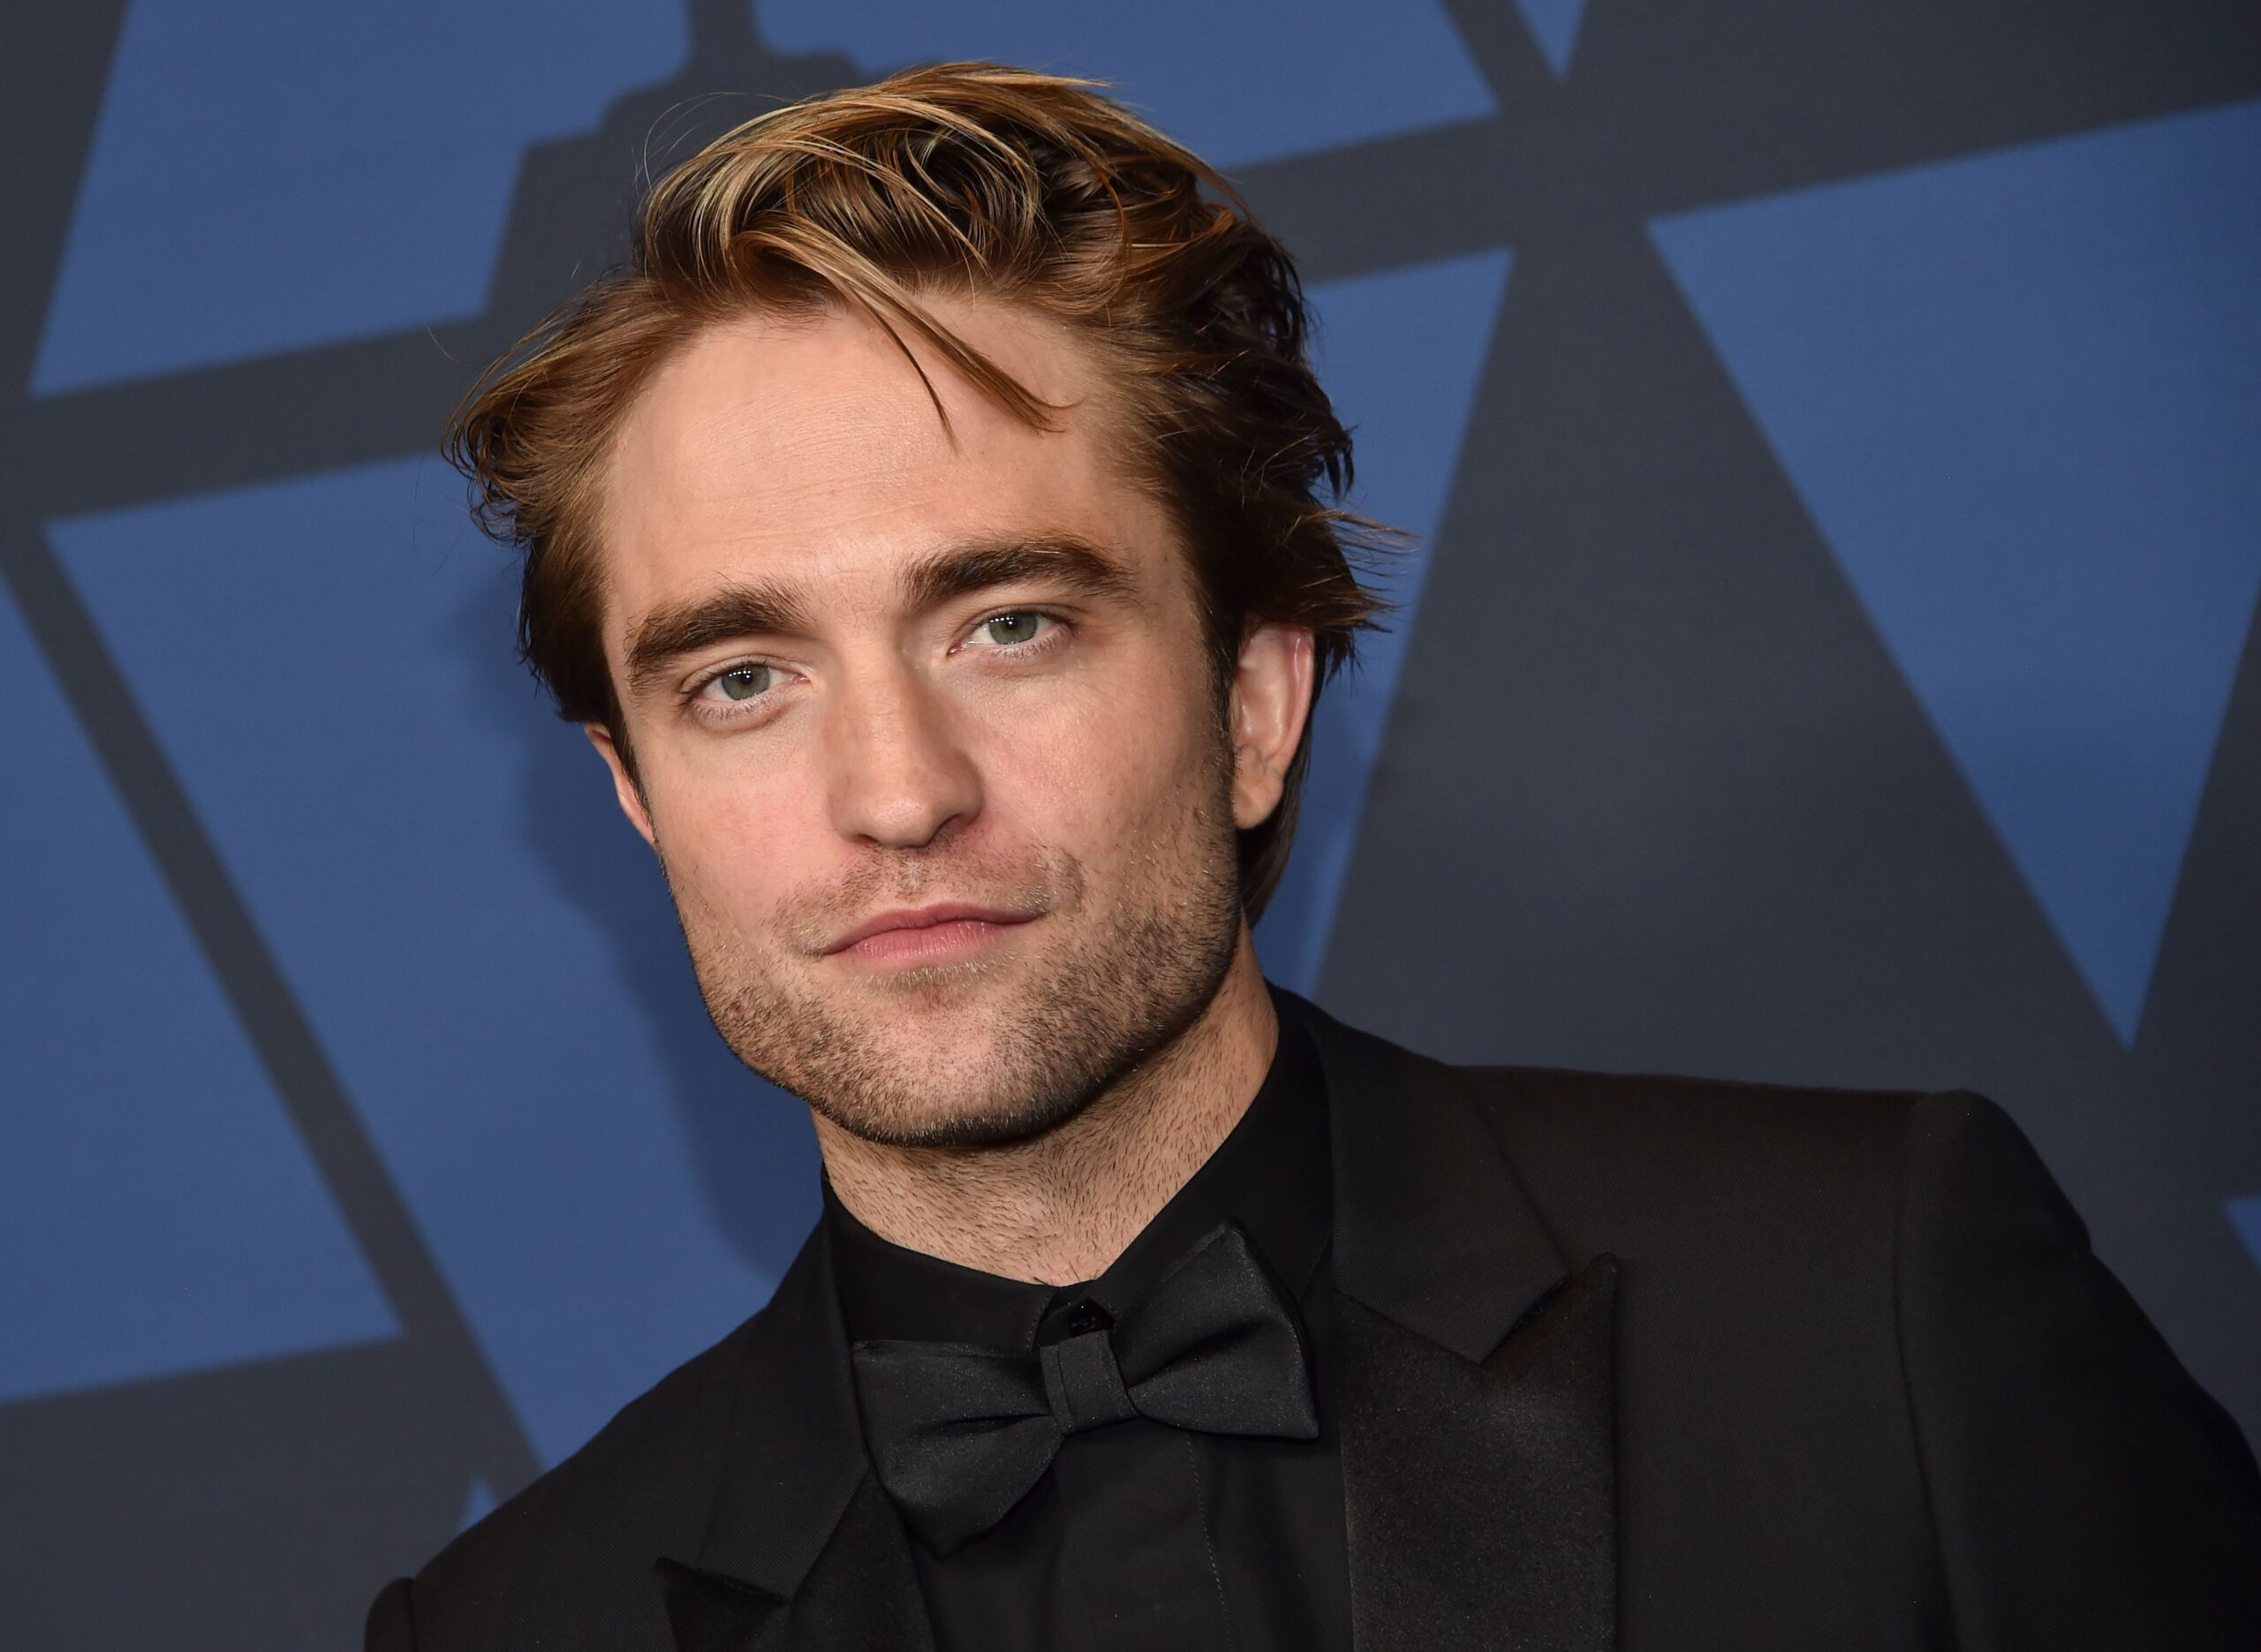 Covid 19 coronavirus: Batman star Robert Pattinson tests positive, production halted